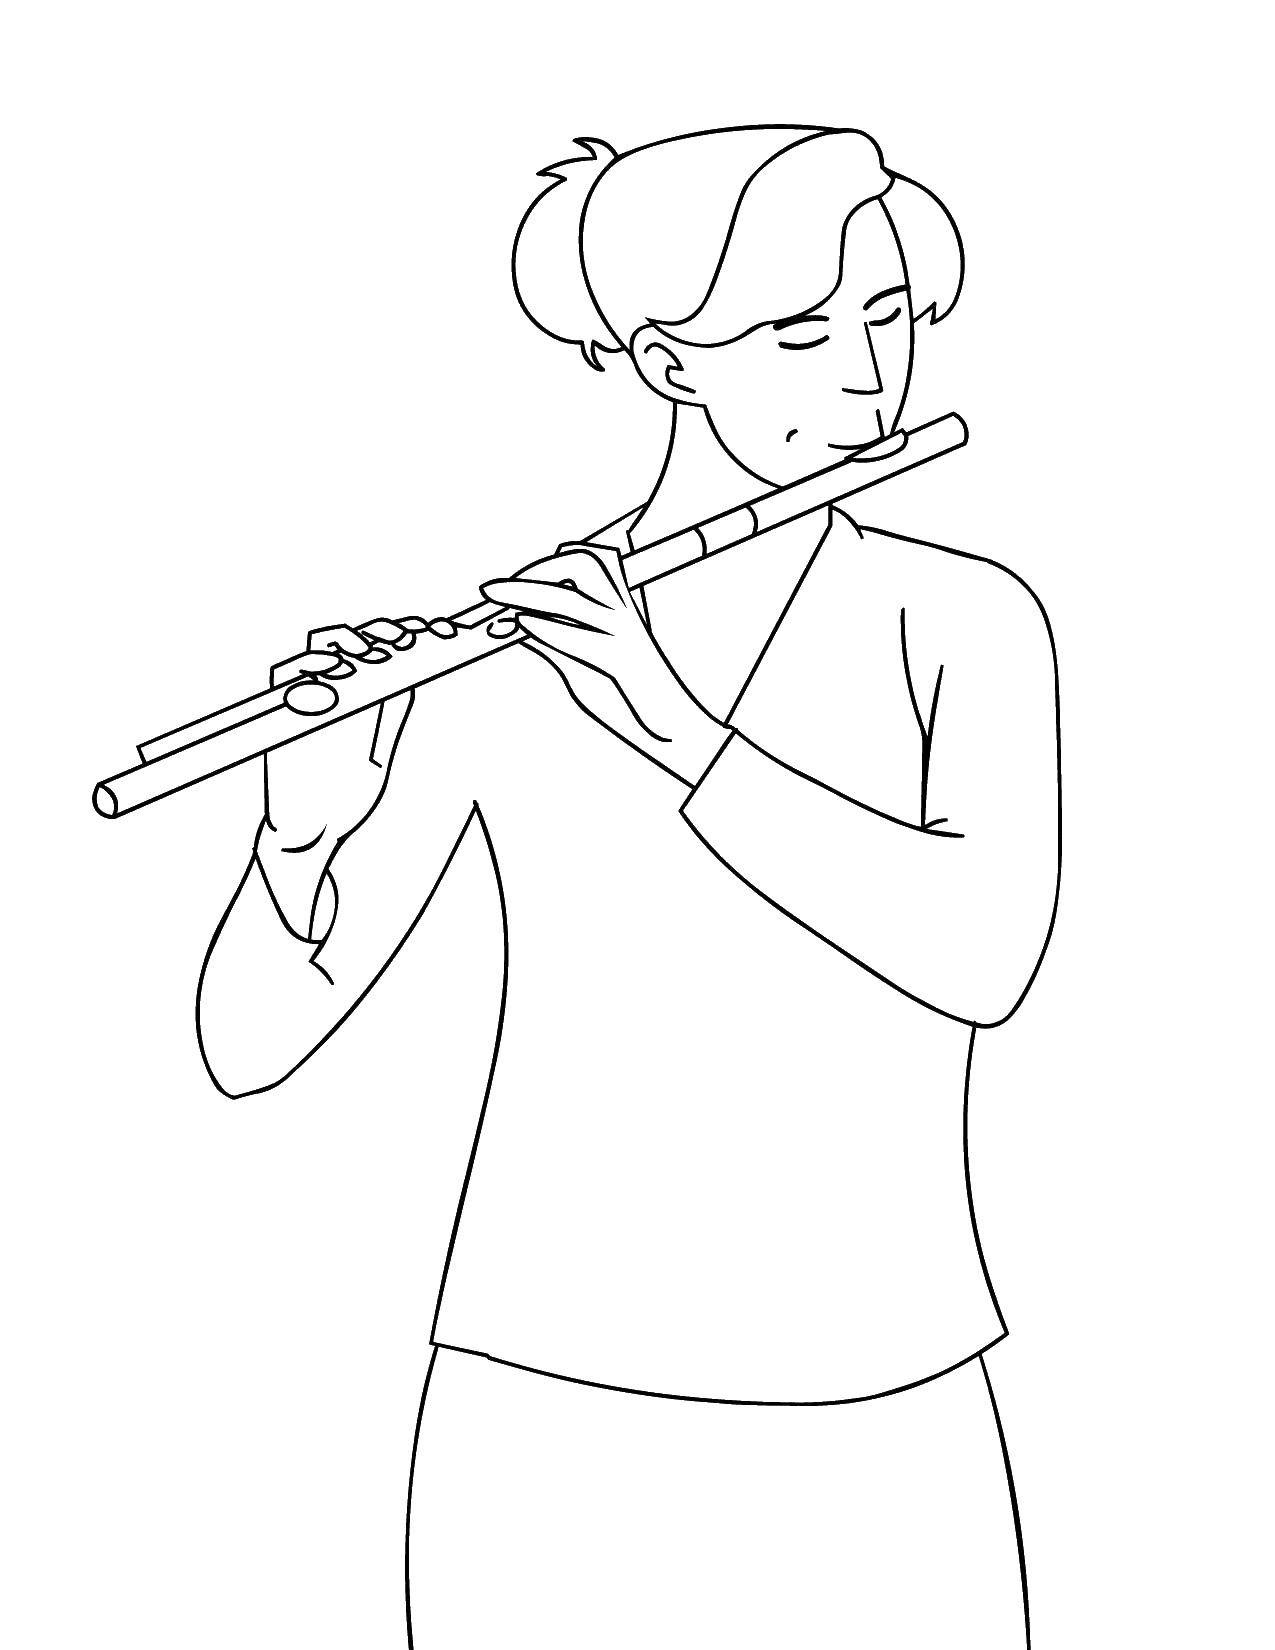 Coloring Girl playing the flute Download Music, instrument, musician, note,.  Print